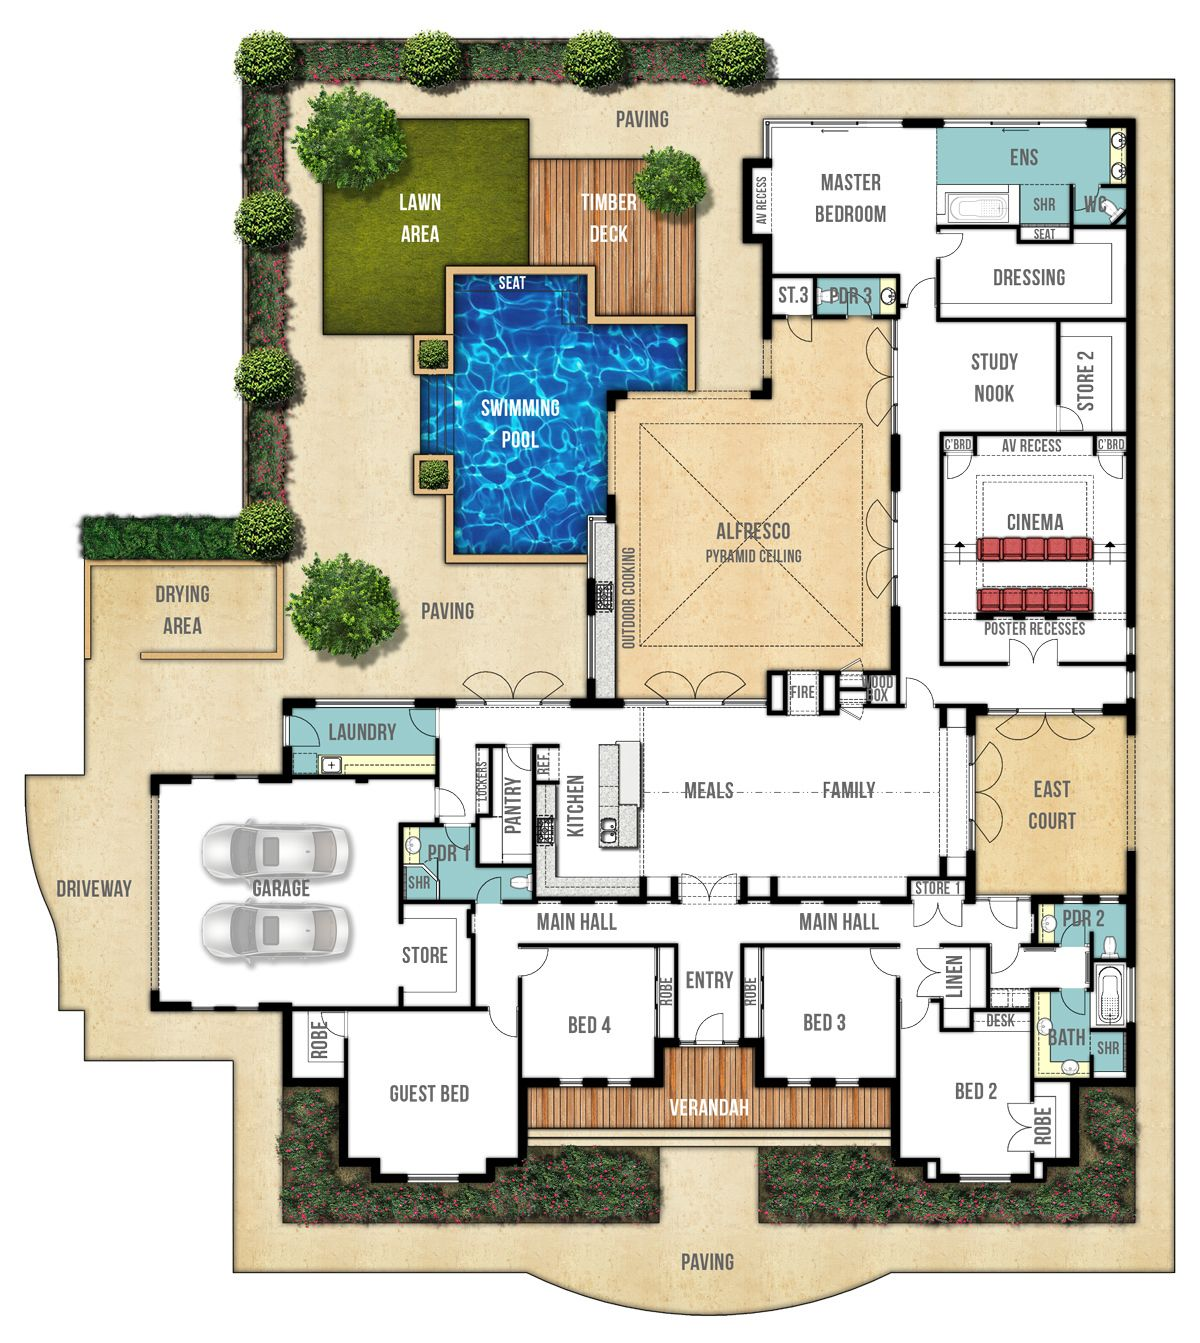 Single storey home design plan the farmhouse by boyd perth also rh ar pinterest